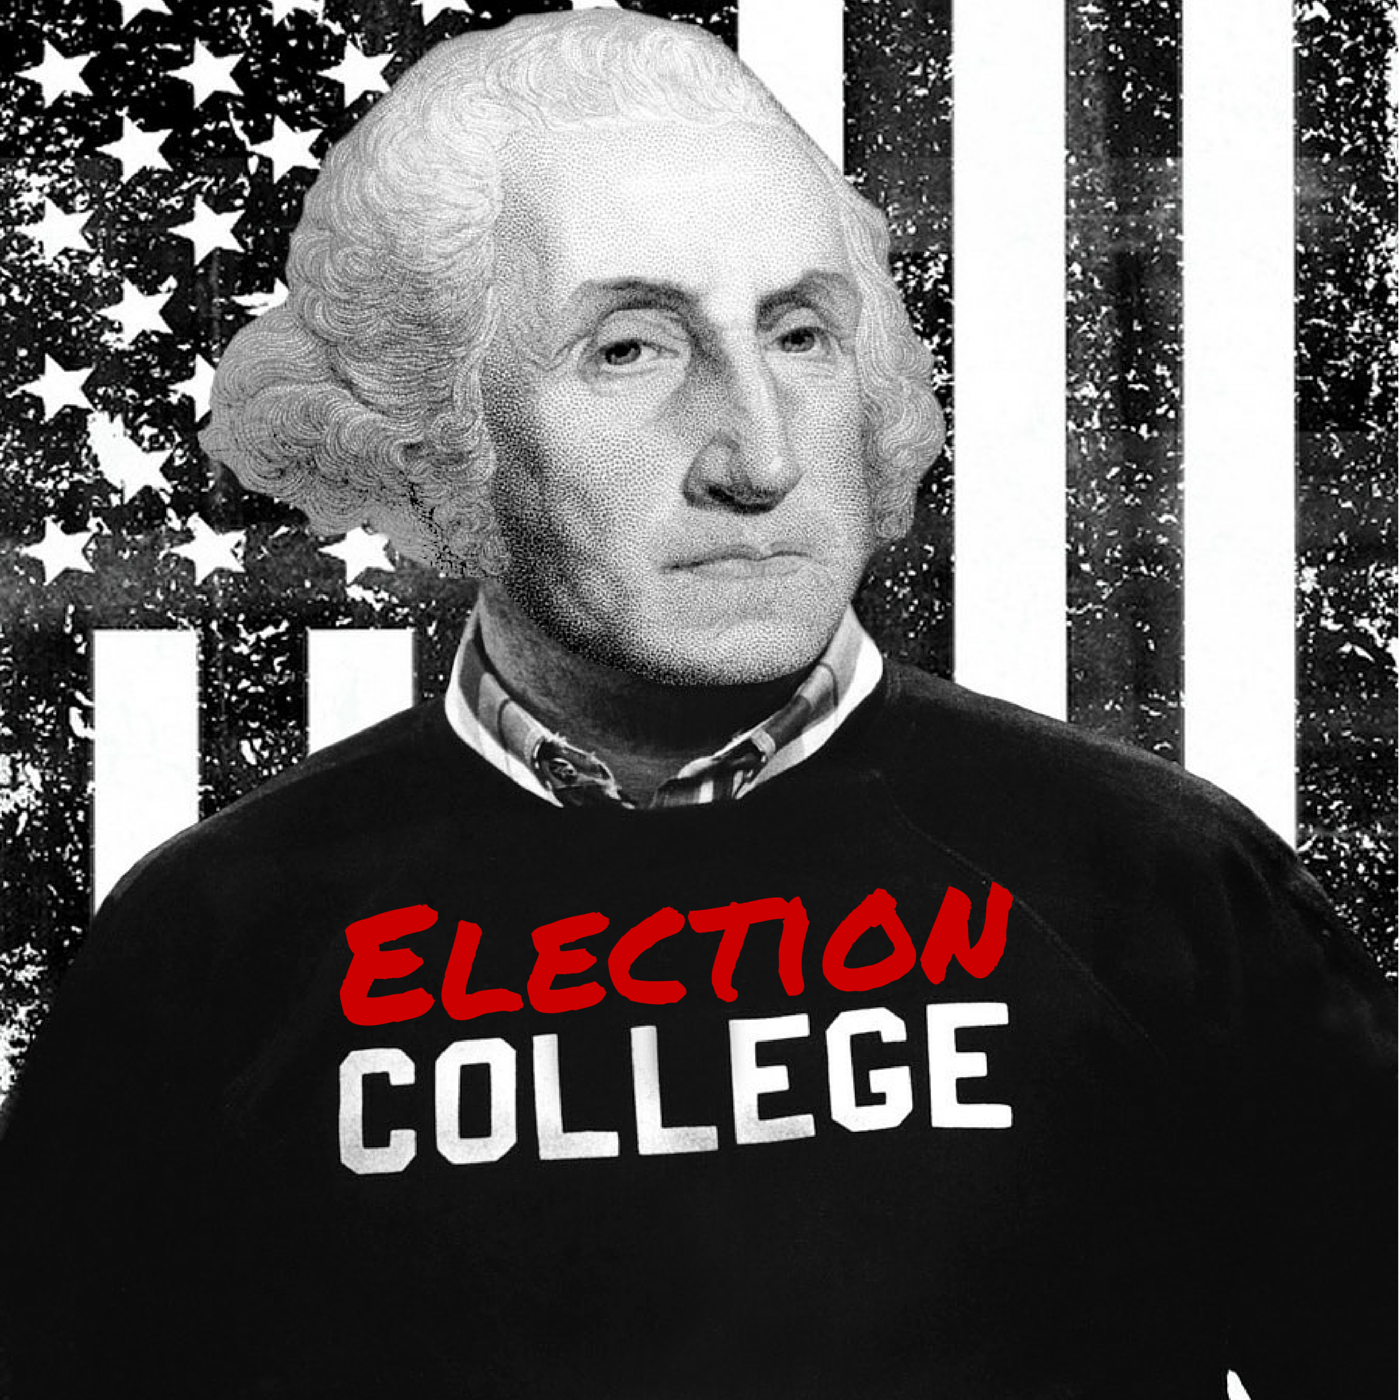 Andrew Johnson - Part 1 | Episode #232 | Election College: United States Presidential Election History